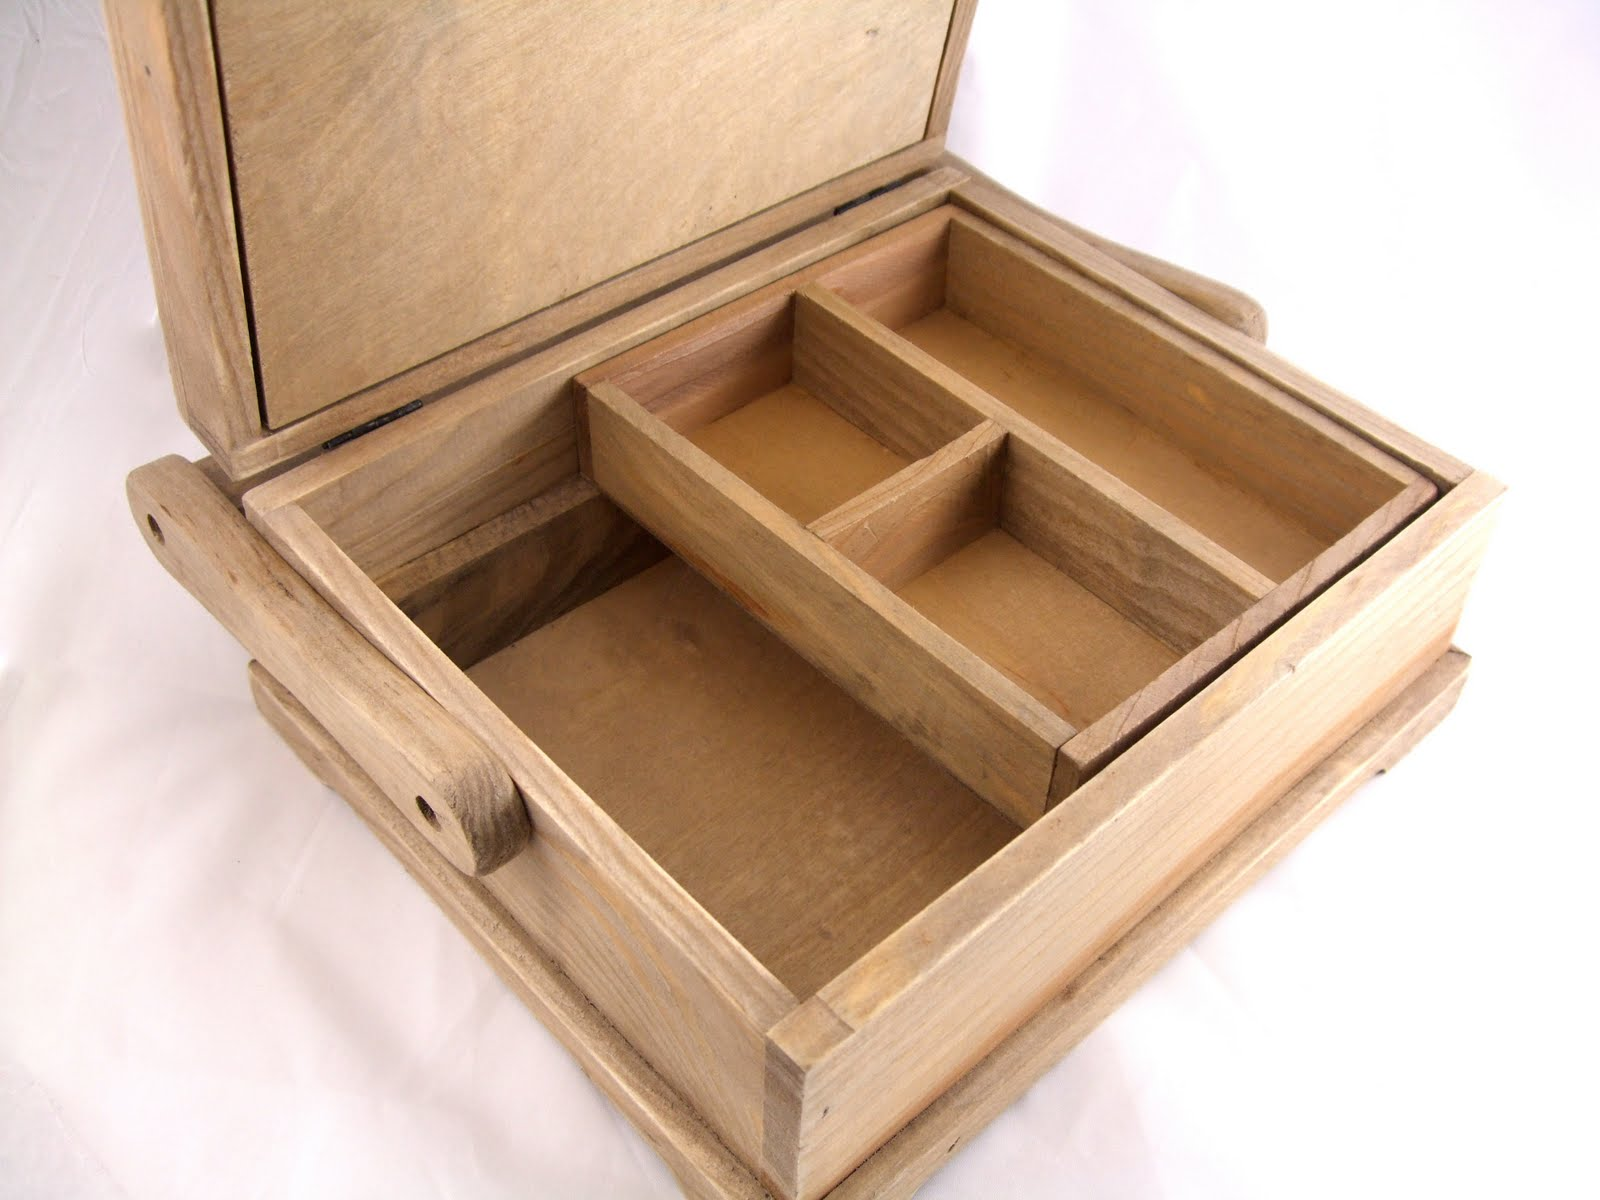 Both the small and medium boxes have a removable inner storage tray.